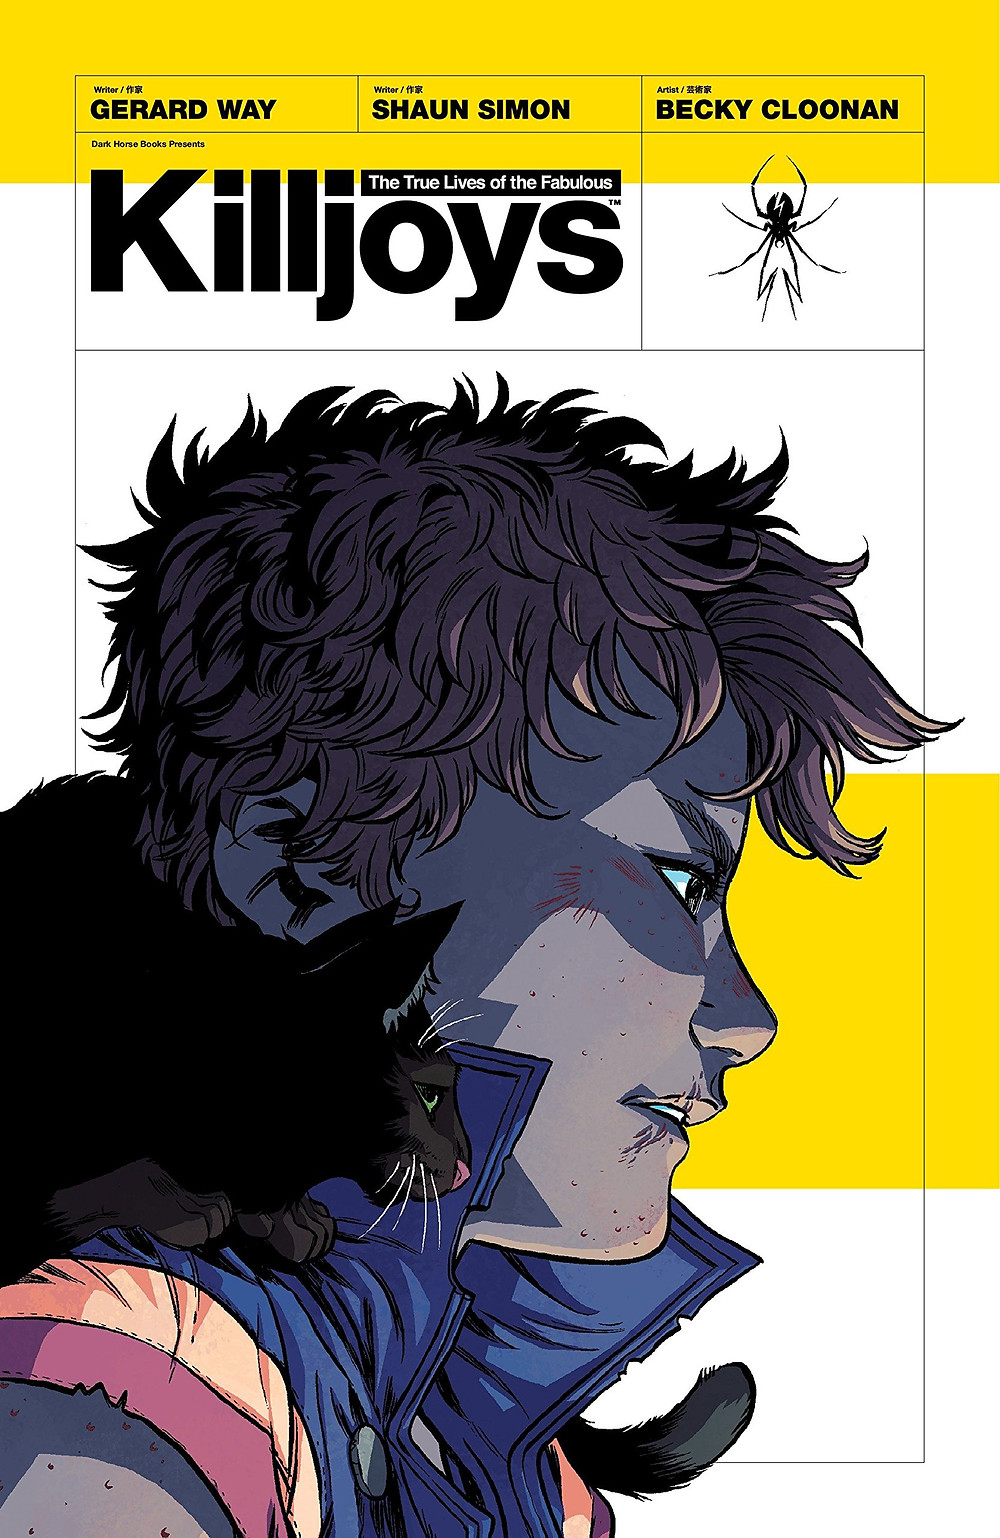 (The True Lives of the Fabulous) Killjoys, cover, Dark Horse, Way/Simon/Cloonan